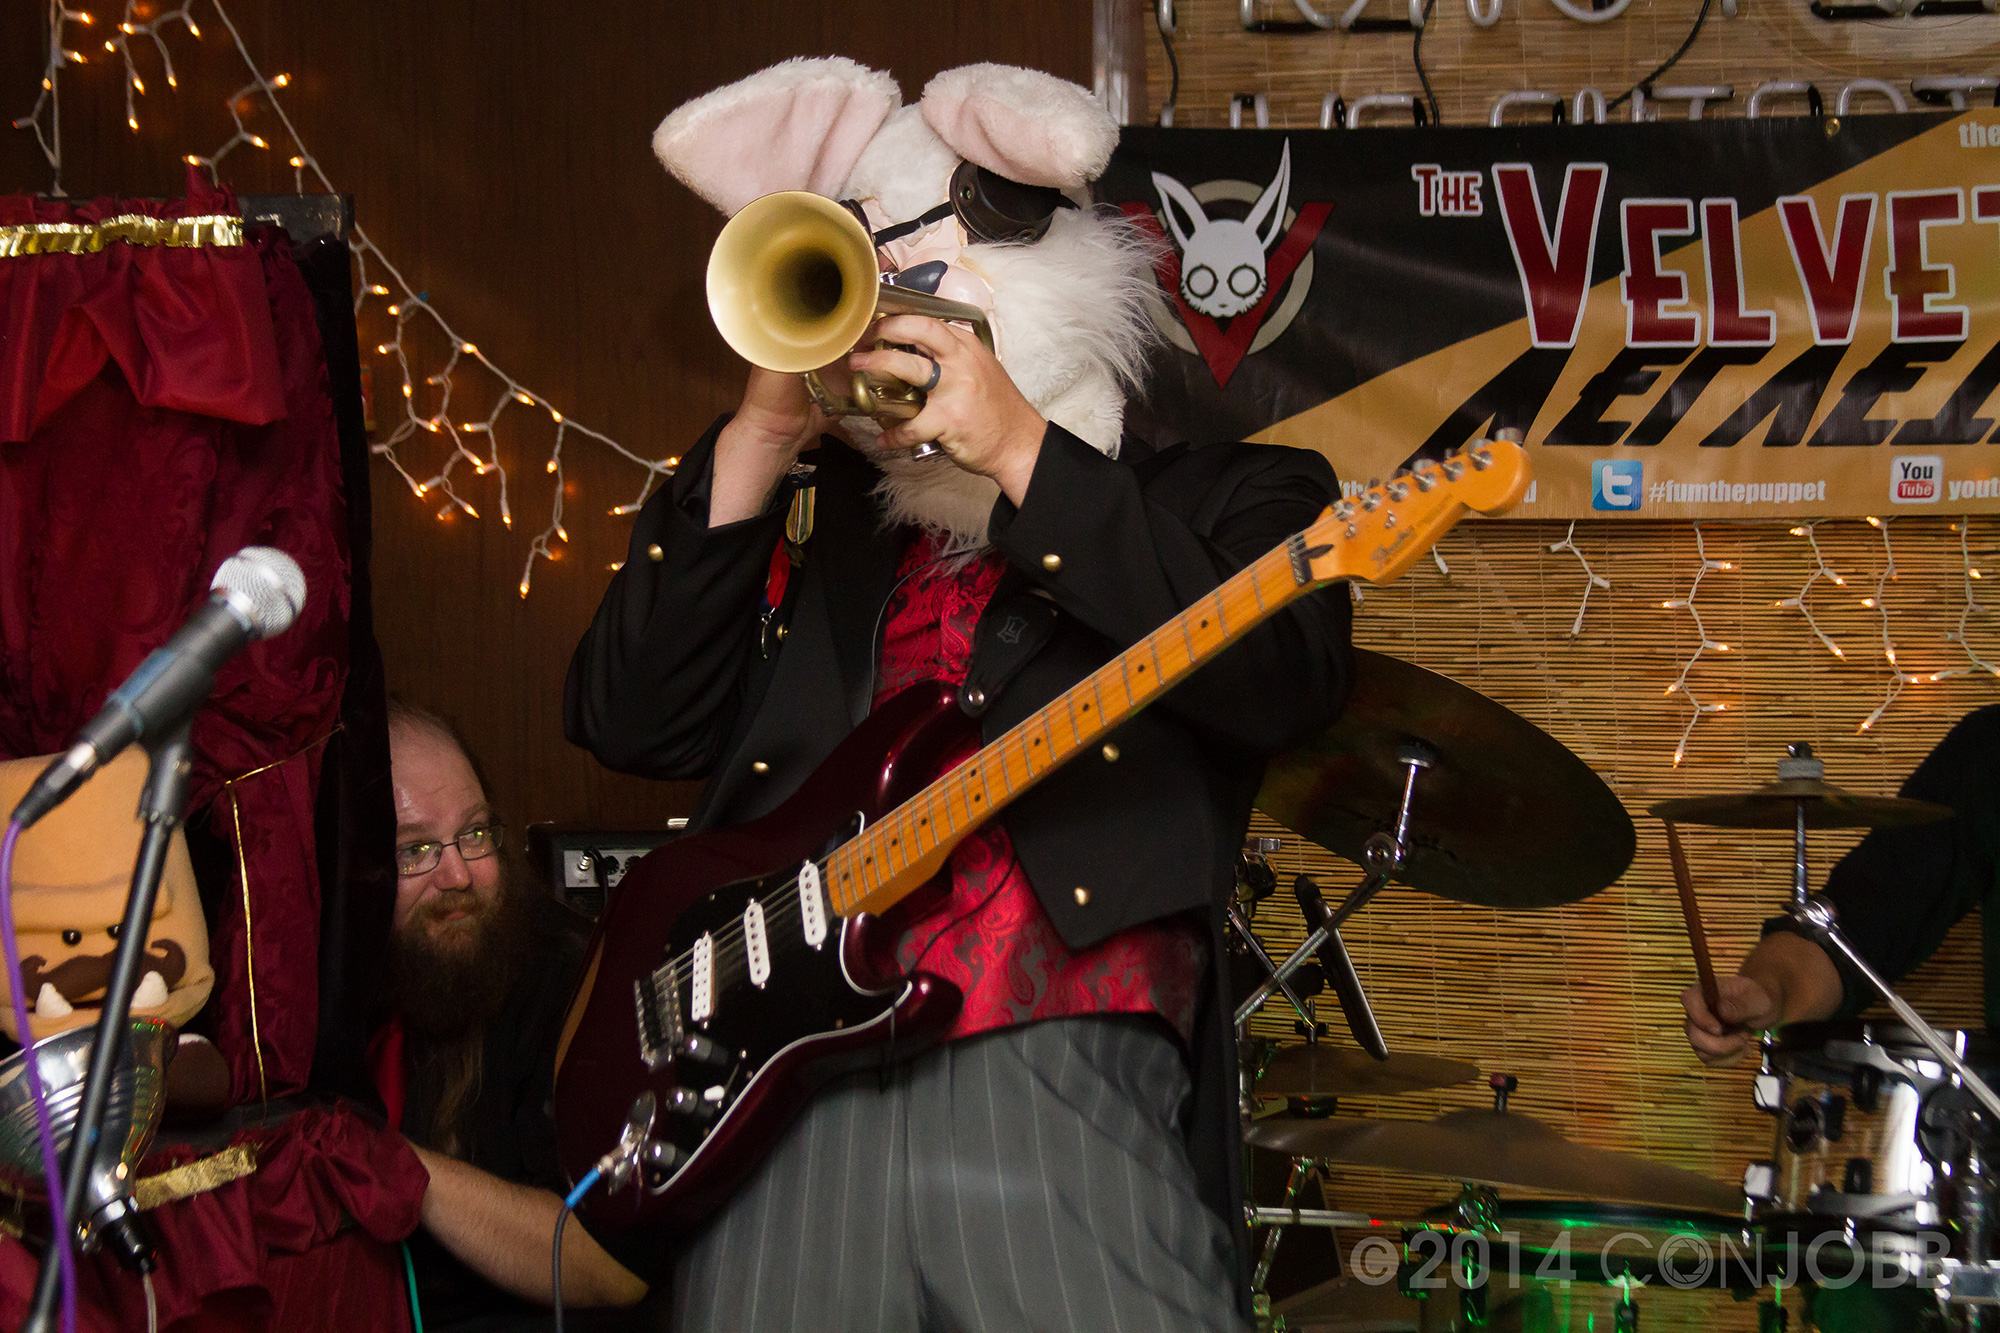 the Baron - Trumpet and Guitar  - photo by Jon Cobb - Novebmer 7 2014